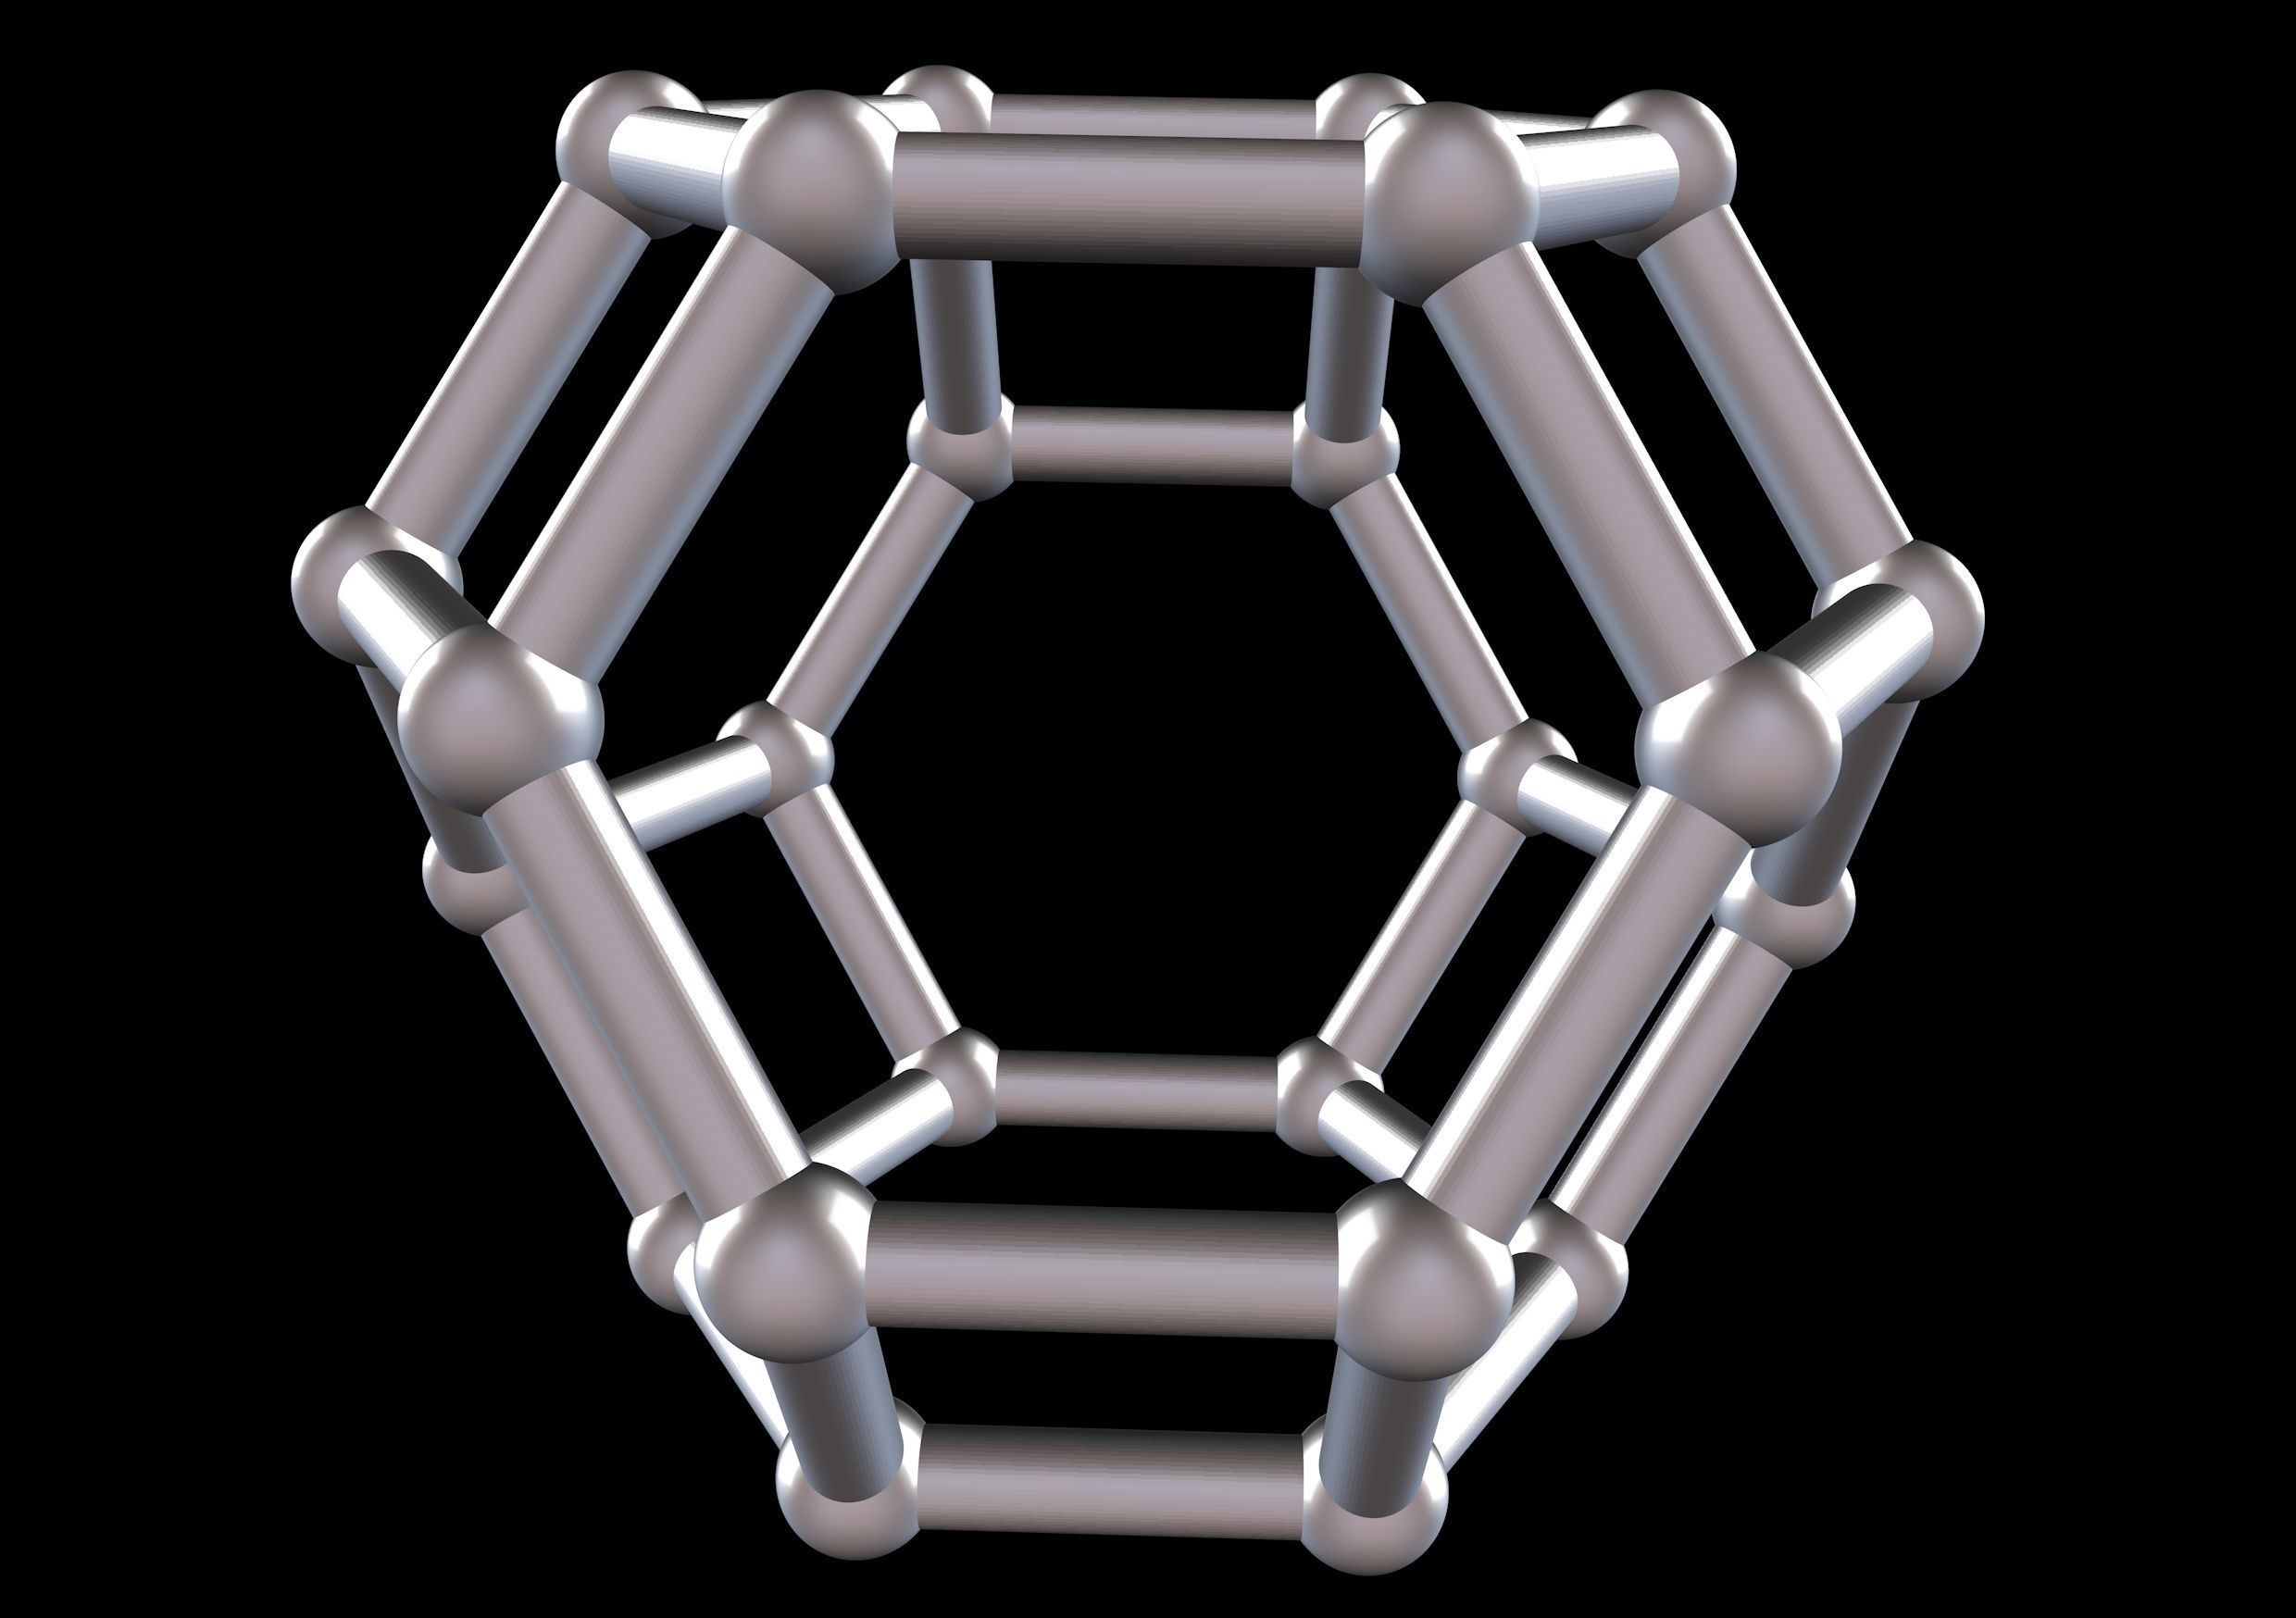 050 Mathart - Archimedean Solids - Truncated Octahedron 02-10cm